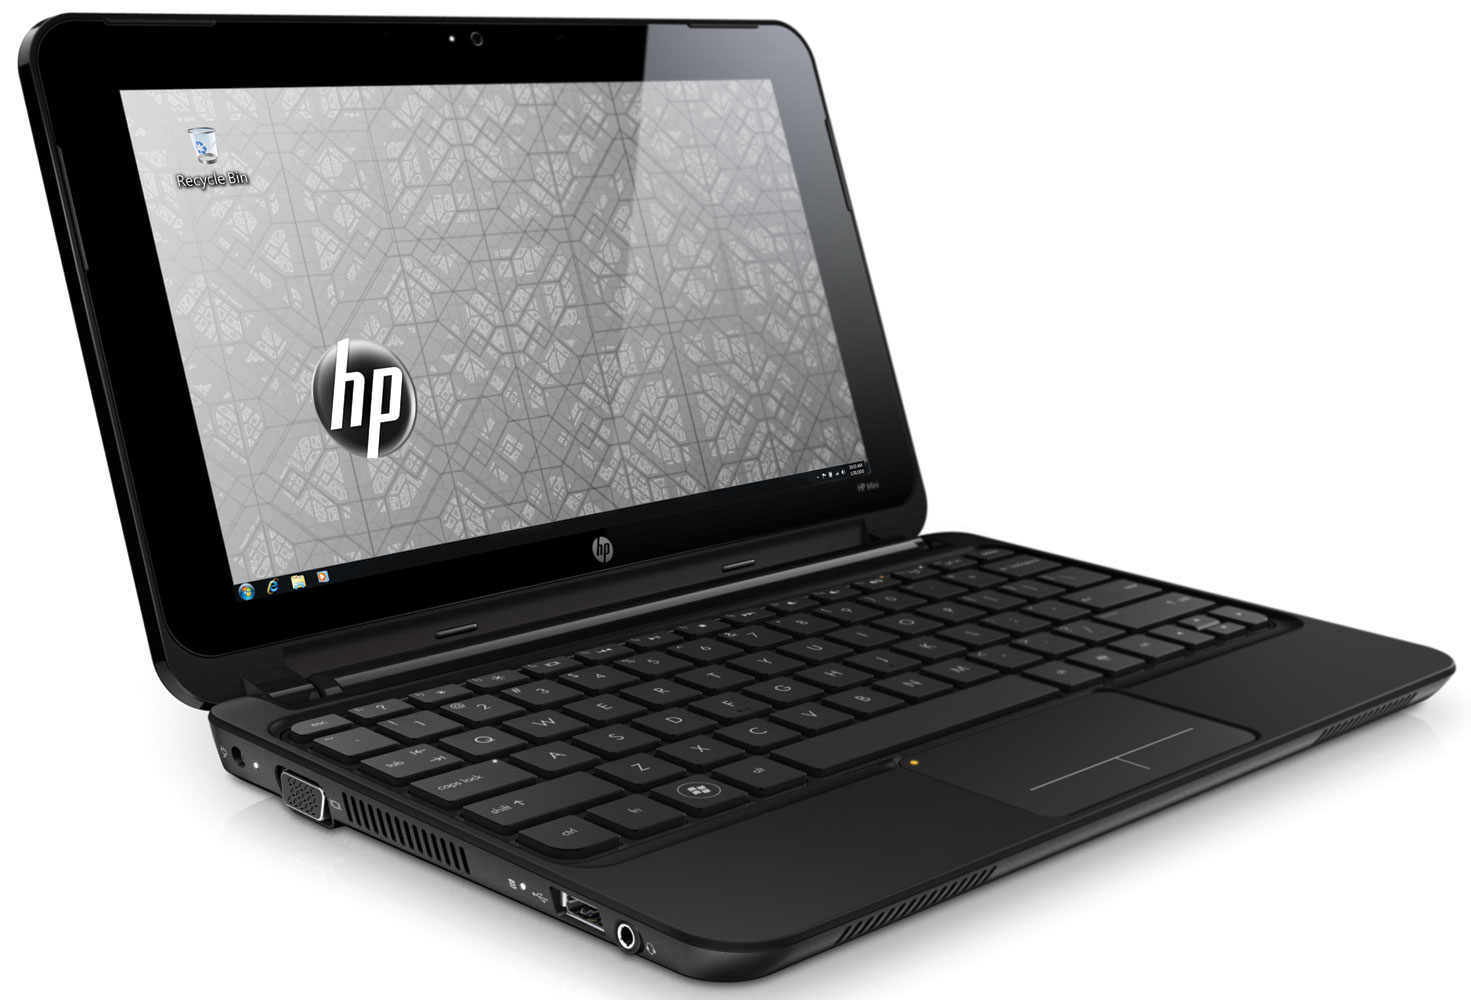 HP MINI 110-3118CL NOTEBOOK DRIVER DOWNLOAD FREE